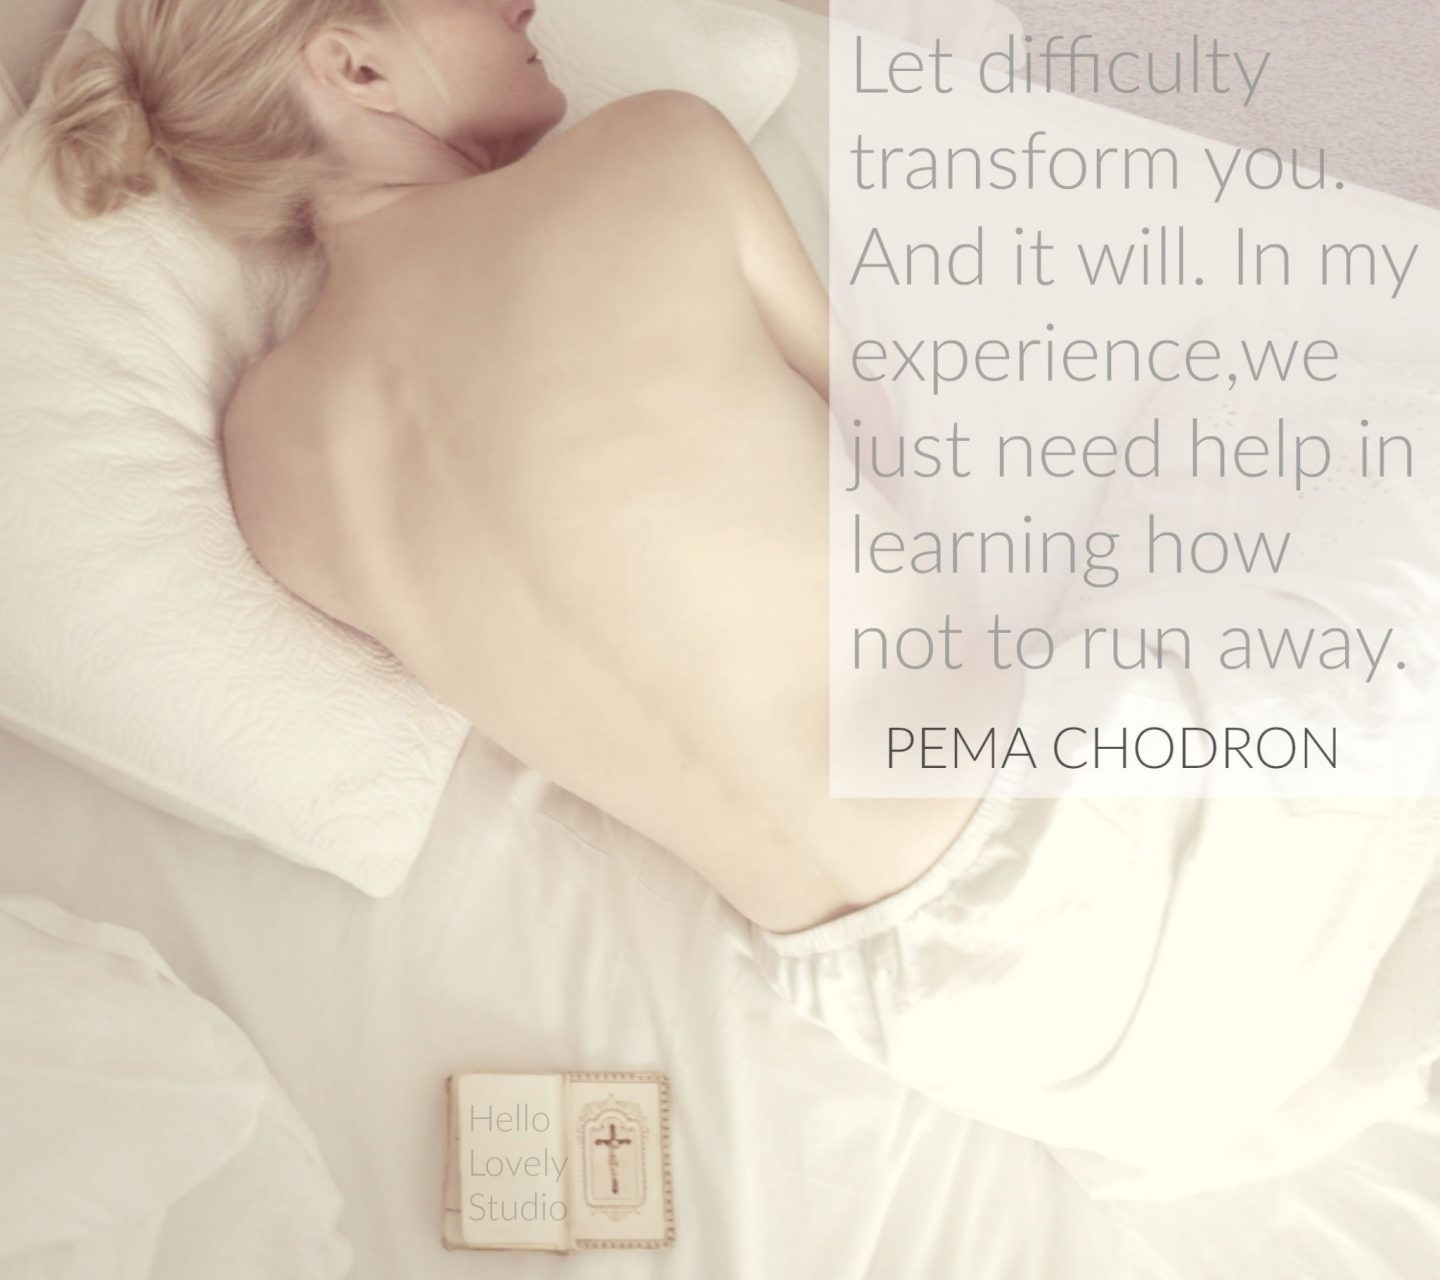 Pema Chodron quote: Let difficulty transform you. And it will. In my experience, we just need help in learning how not to run away. #pemachodron #quote #struggle #hellolovelystudio